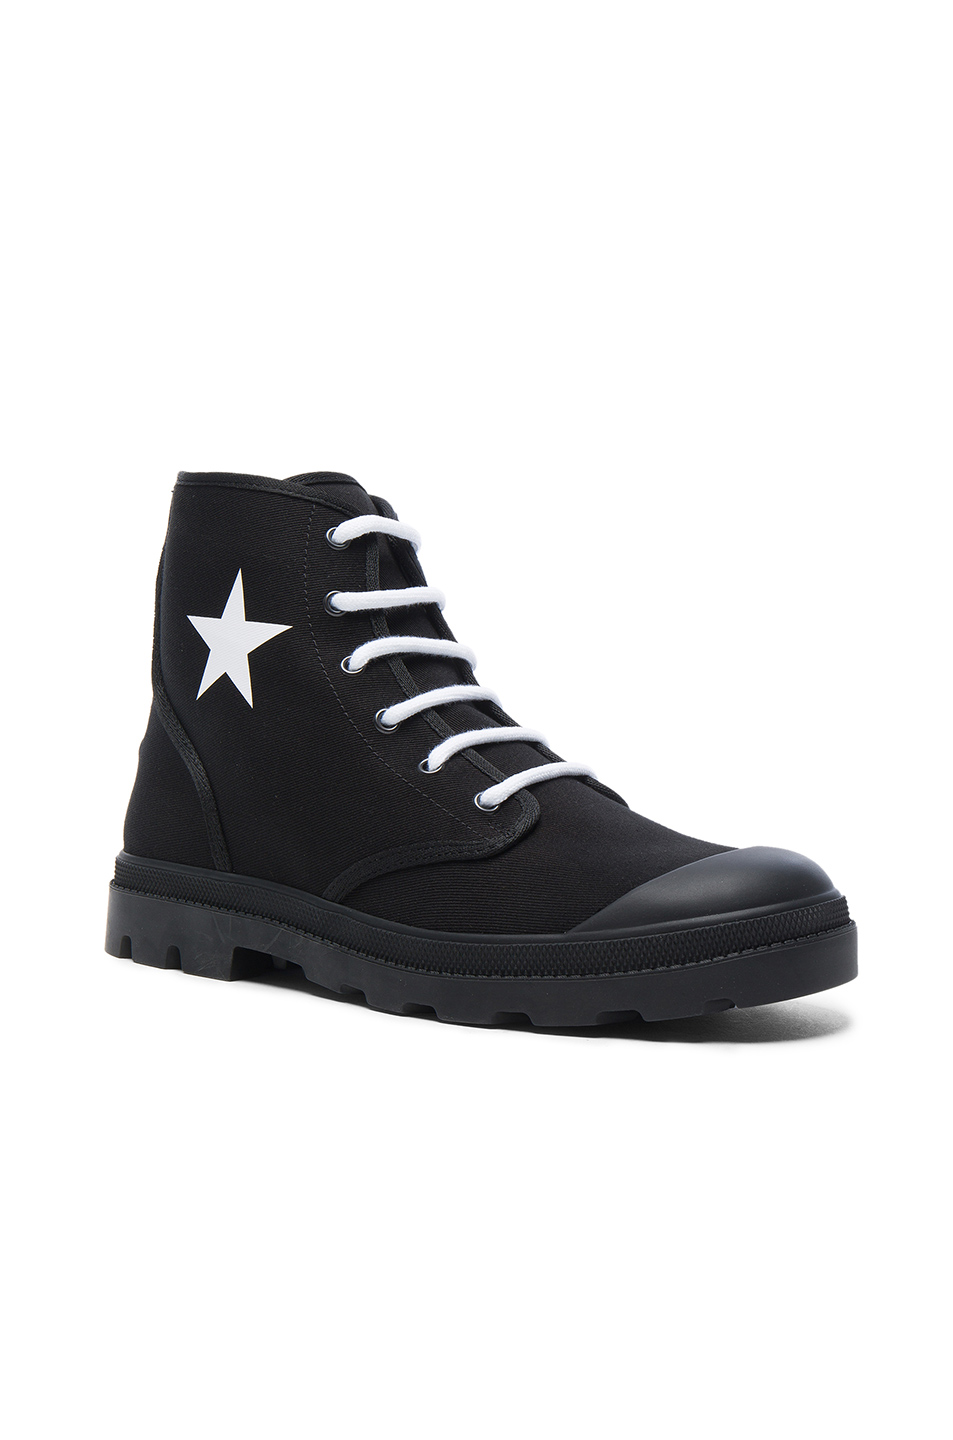 Givenchy Canvas Star Sneaker Boots in Black